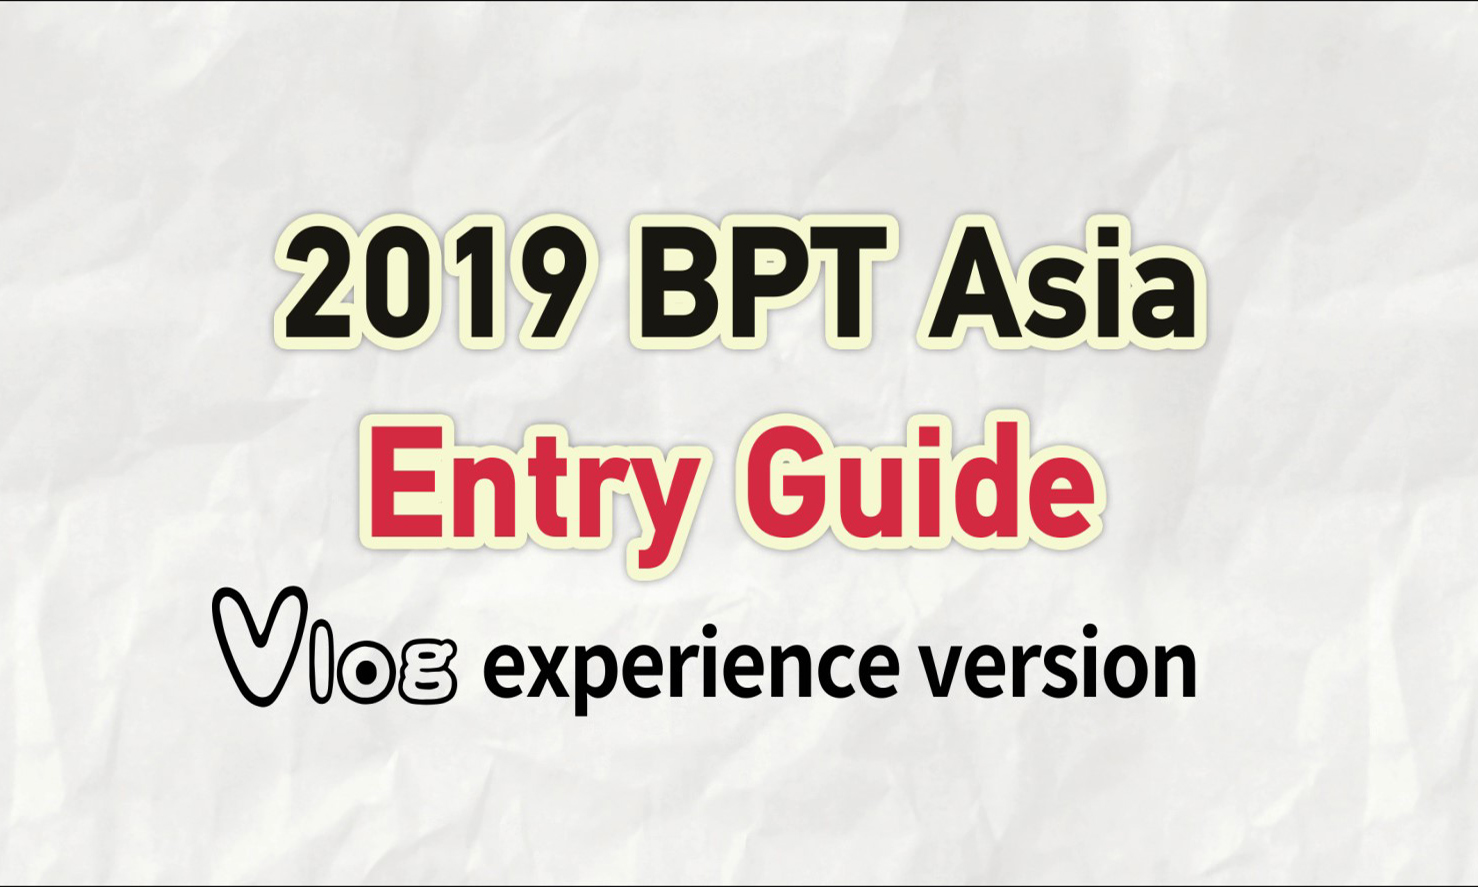 2019 BPT Asia Entry Guide VLOG experience version